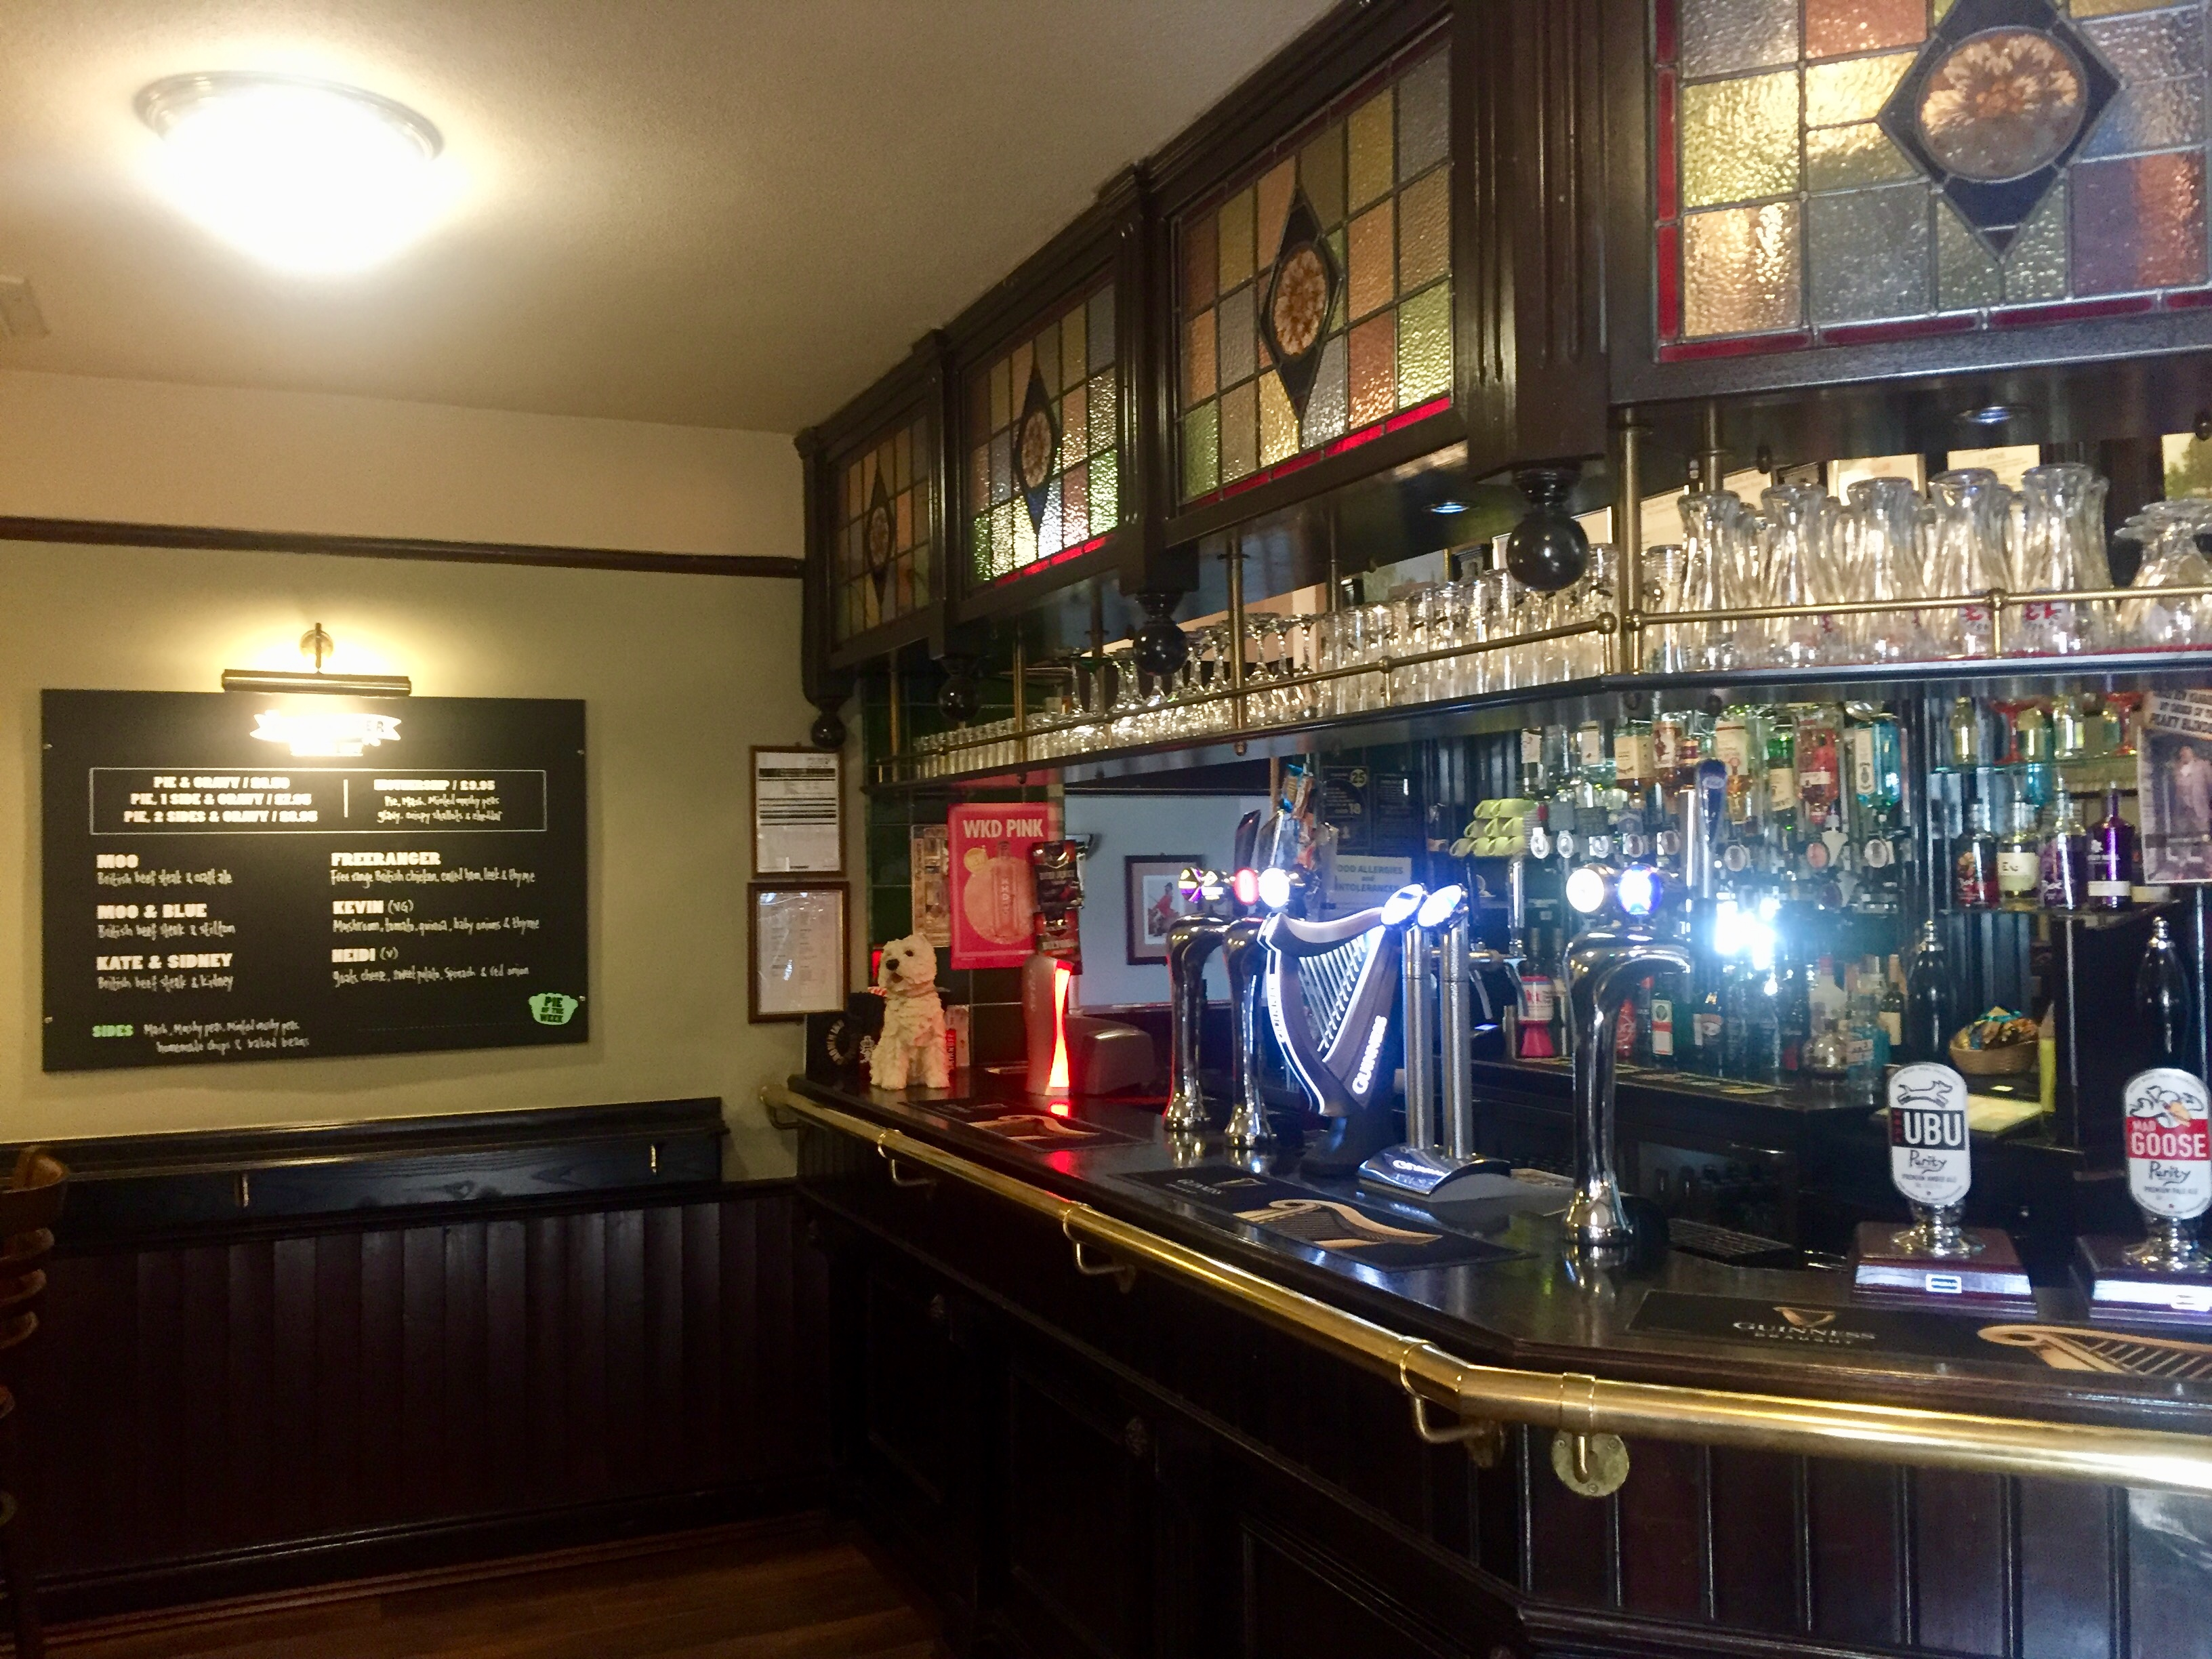 The interior of The Crown Inn in Rotherham